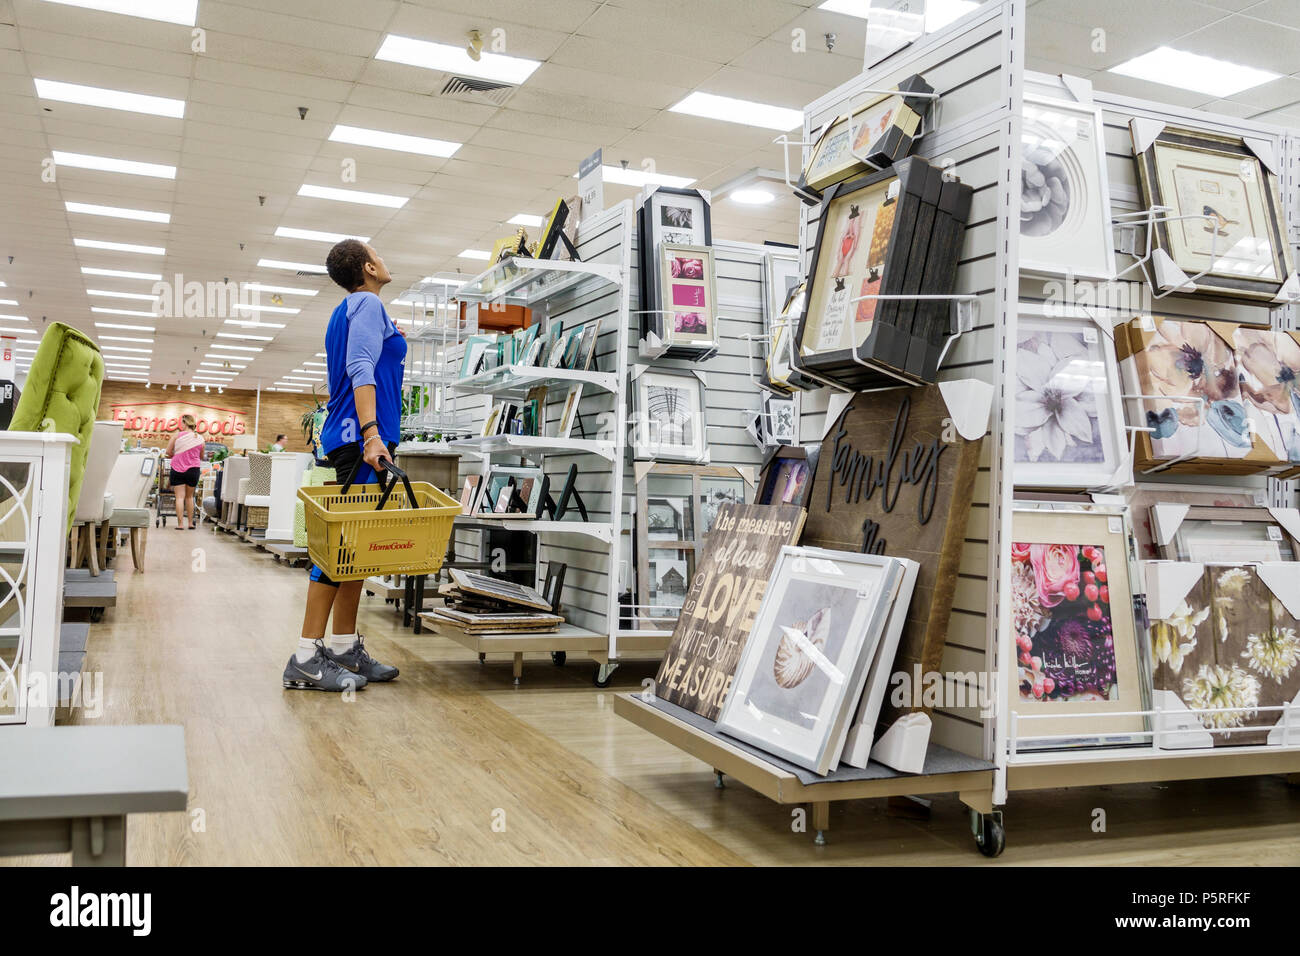 Stuart Florida HomeGoods Discount Home Furnishings Decor Display Sale Shopping Interior Frames Pictures Black Woman Looking Shelves